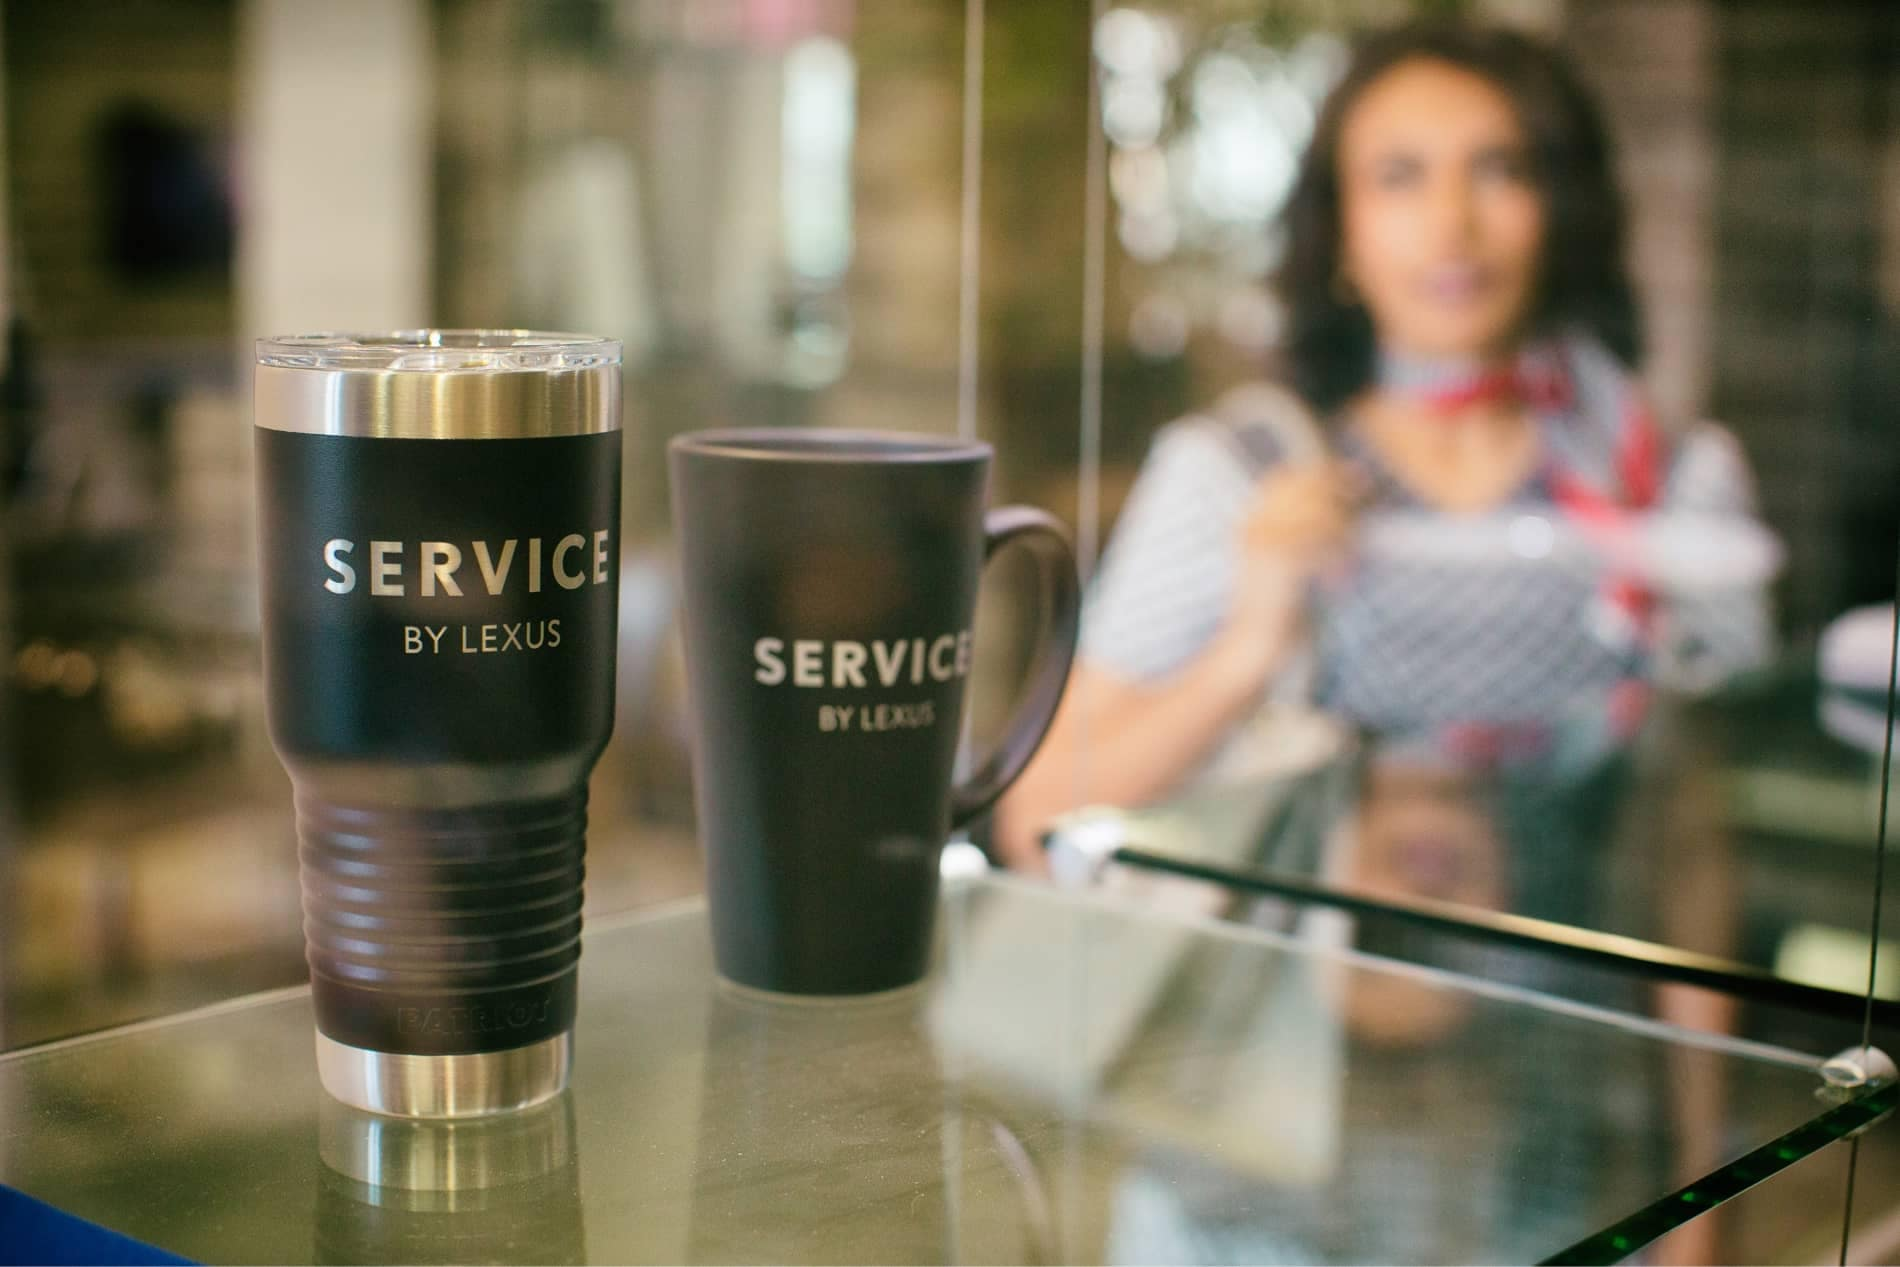 Close up of coffee mugs with Service by Lexus printed on them.